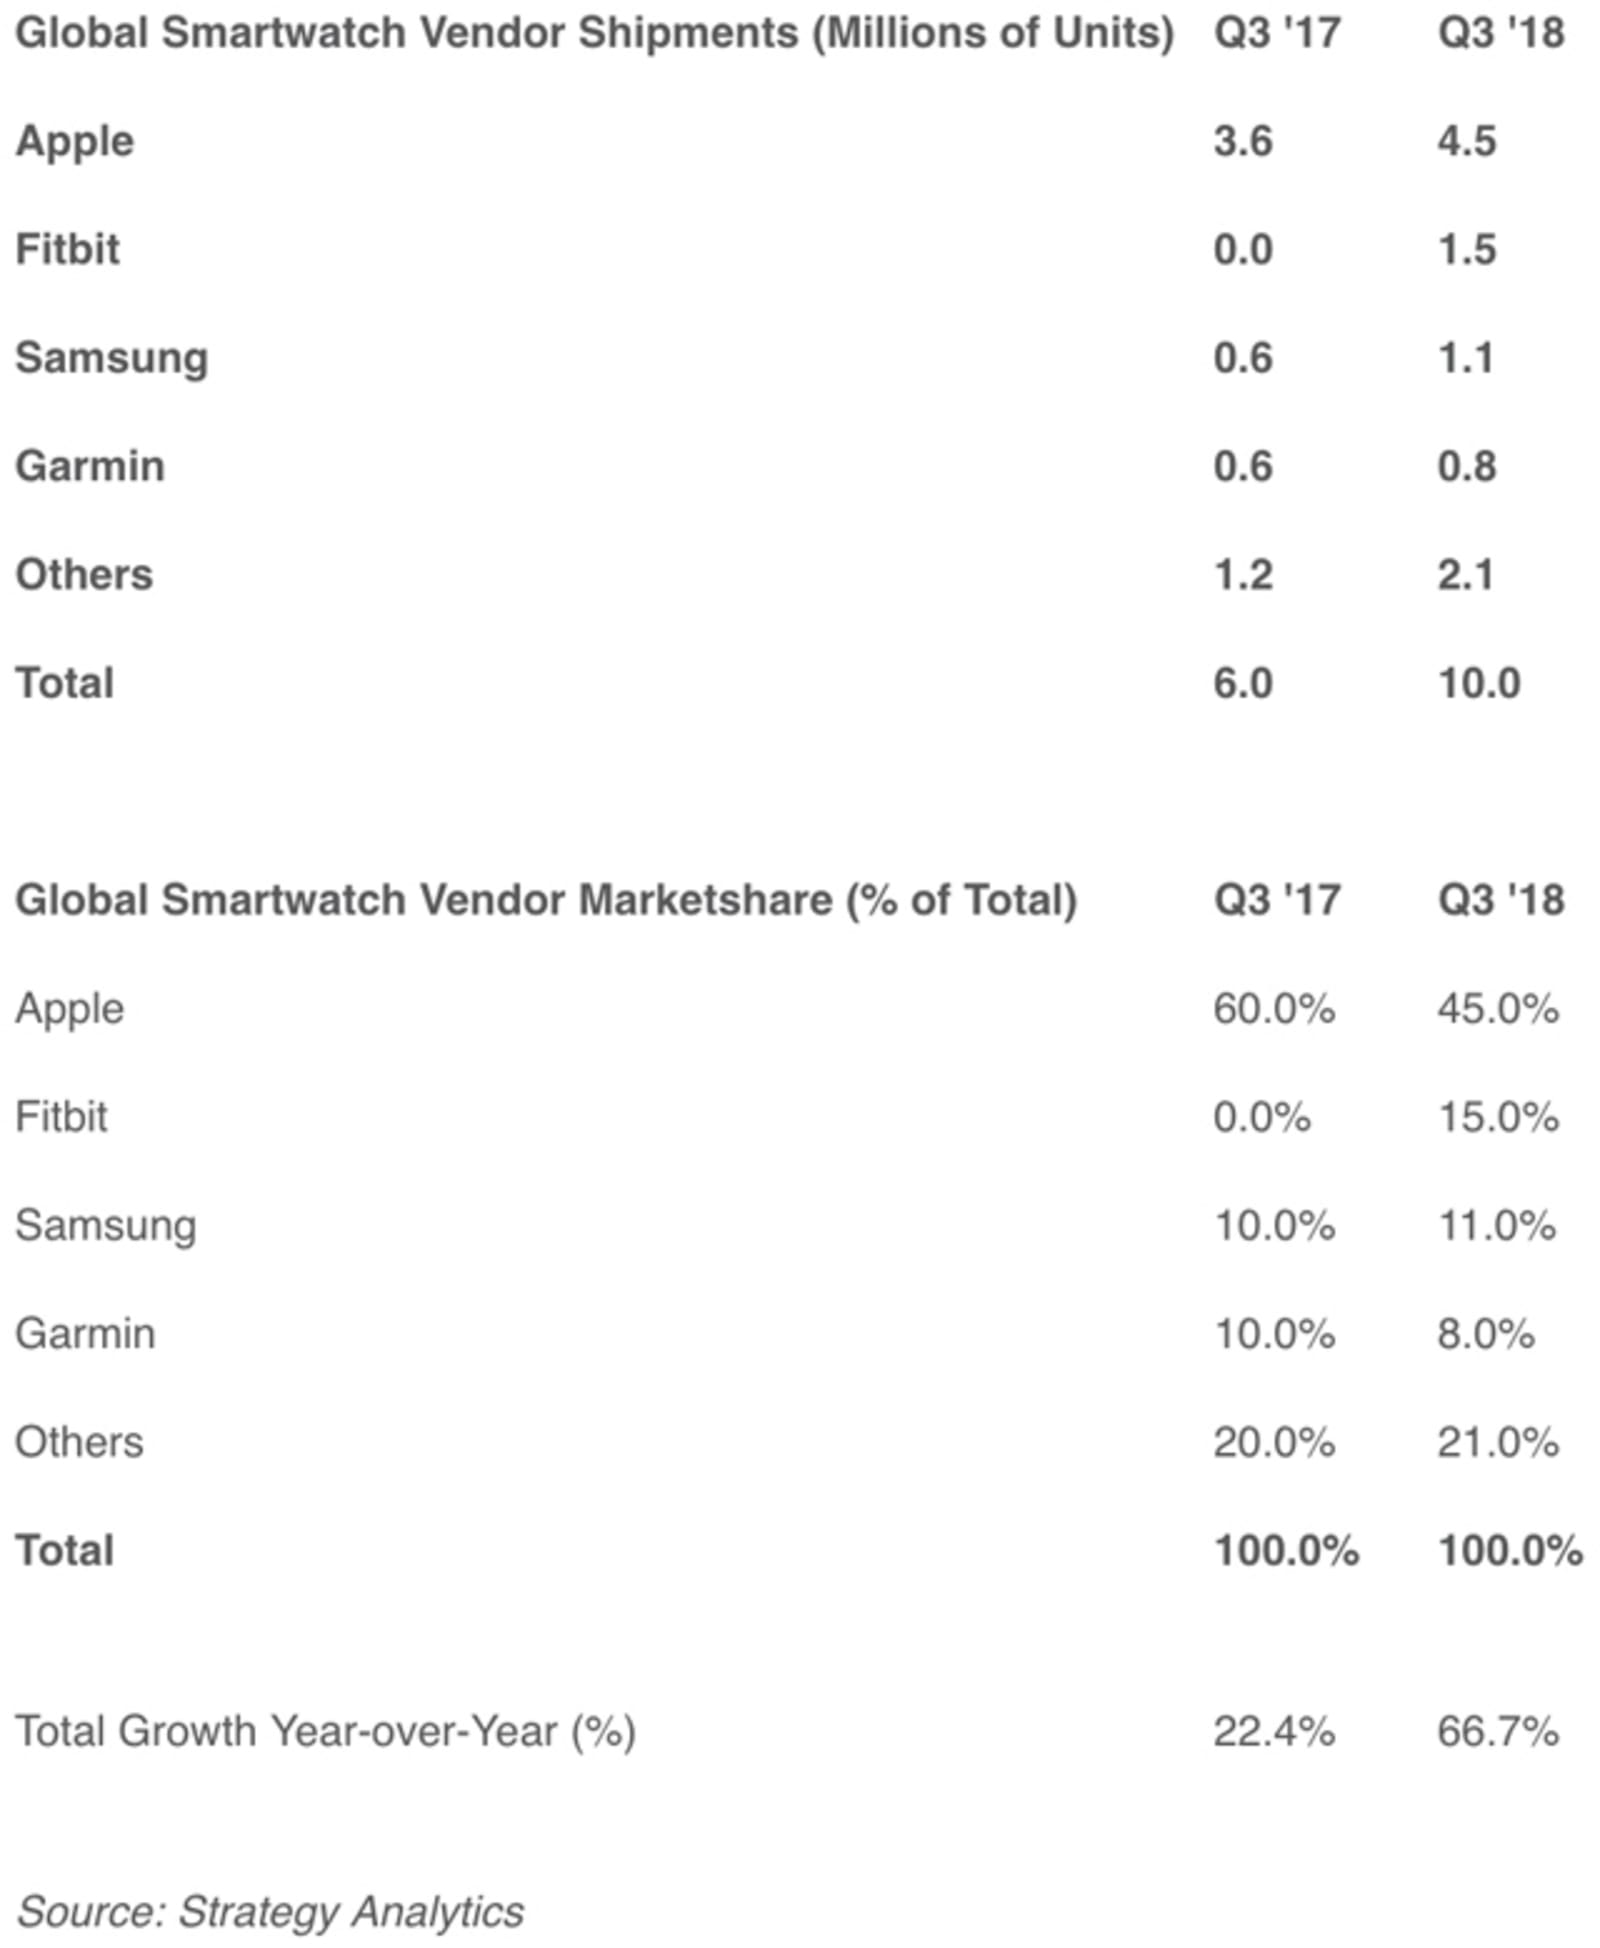 Smartwatch shipment estimates, Q3 2018